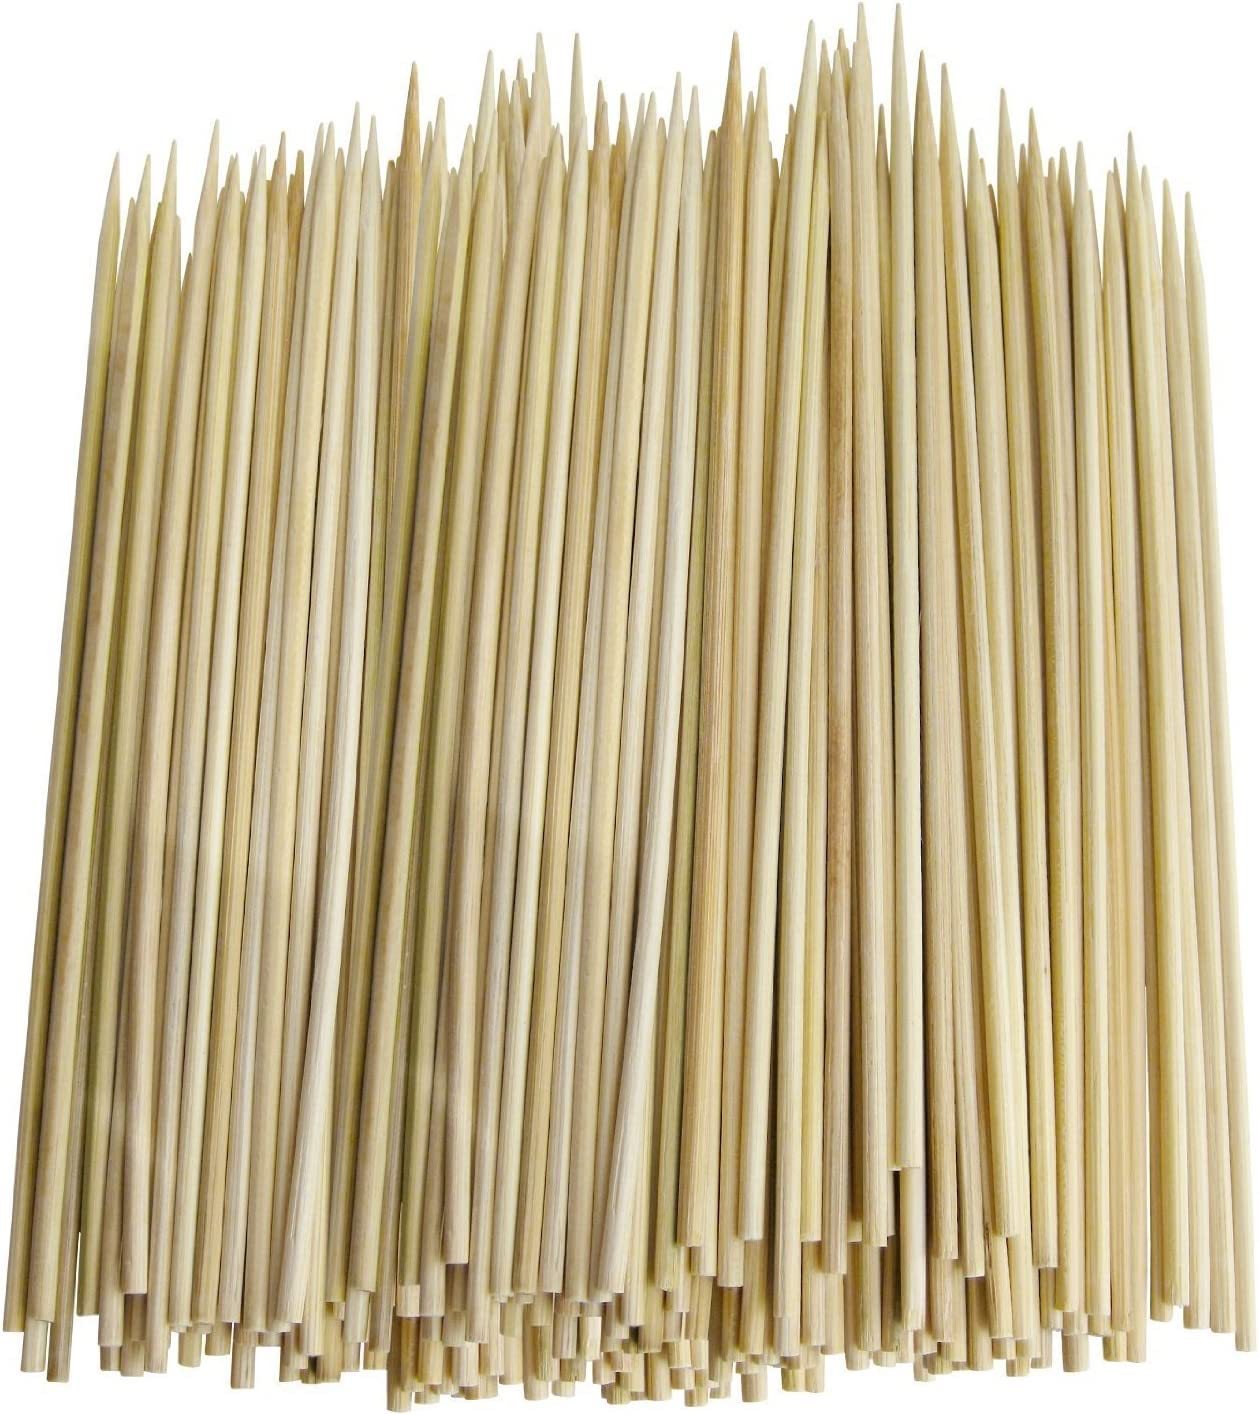 Pack of 300 Thin Bamboo Skewers for BBQ, Skewer, Shish Kabobs, Appetizers (12 Inch)